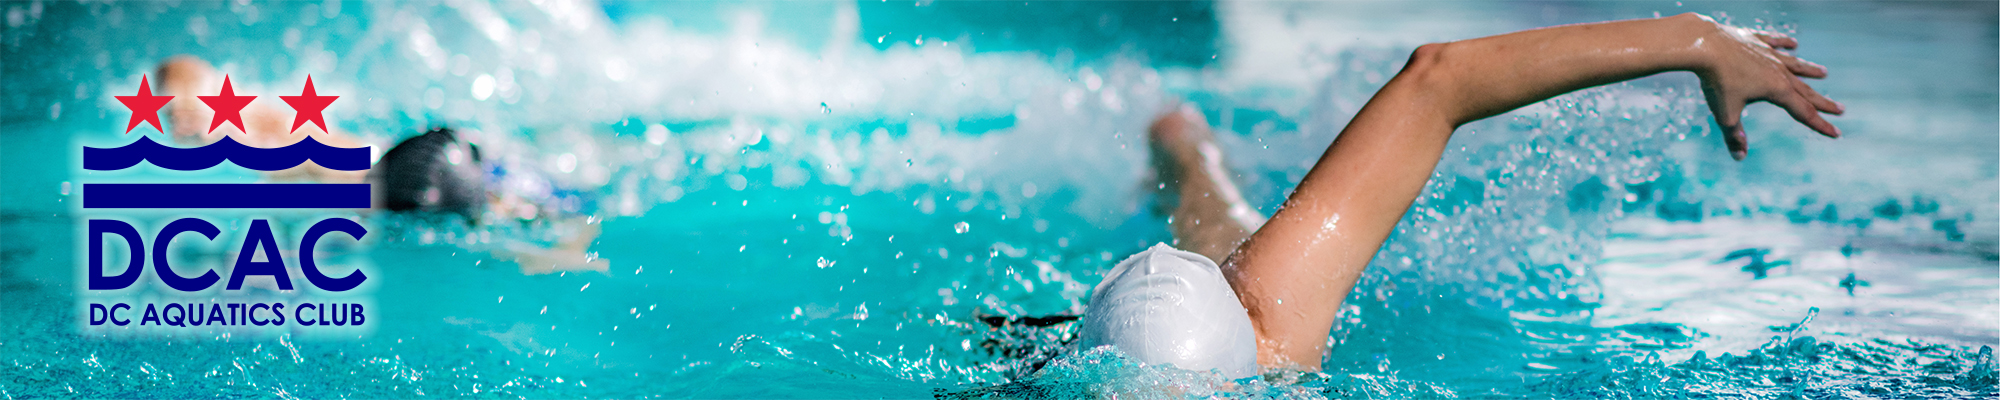 District Of Columbia Aquatics Club